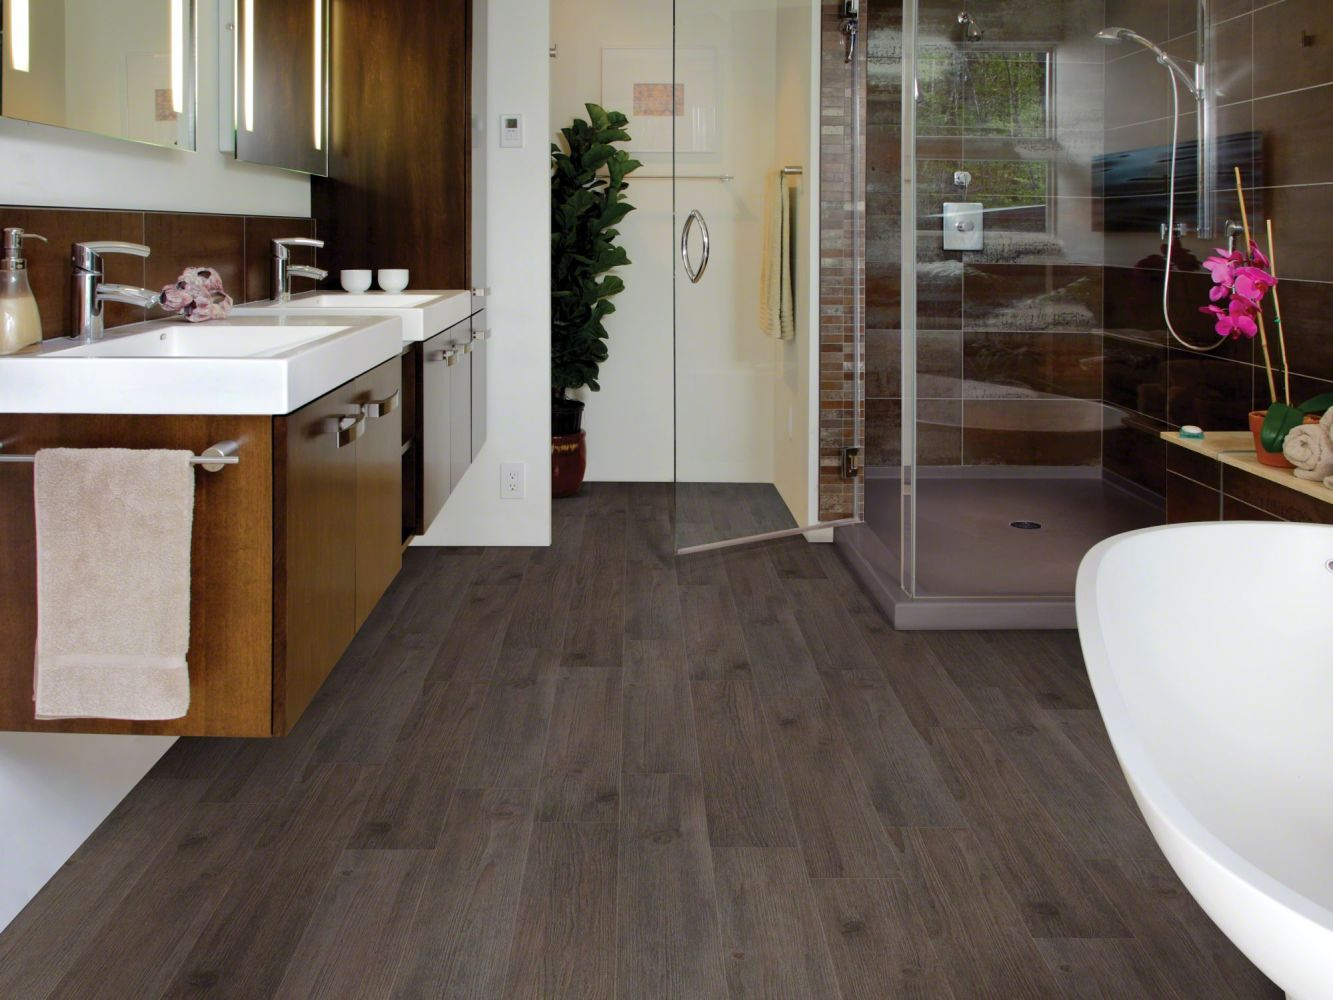 Shaw Floors Resilient Property Solutions Modernality 20 Skyline 00759_VE109